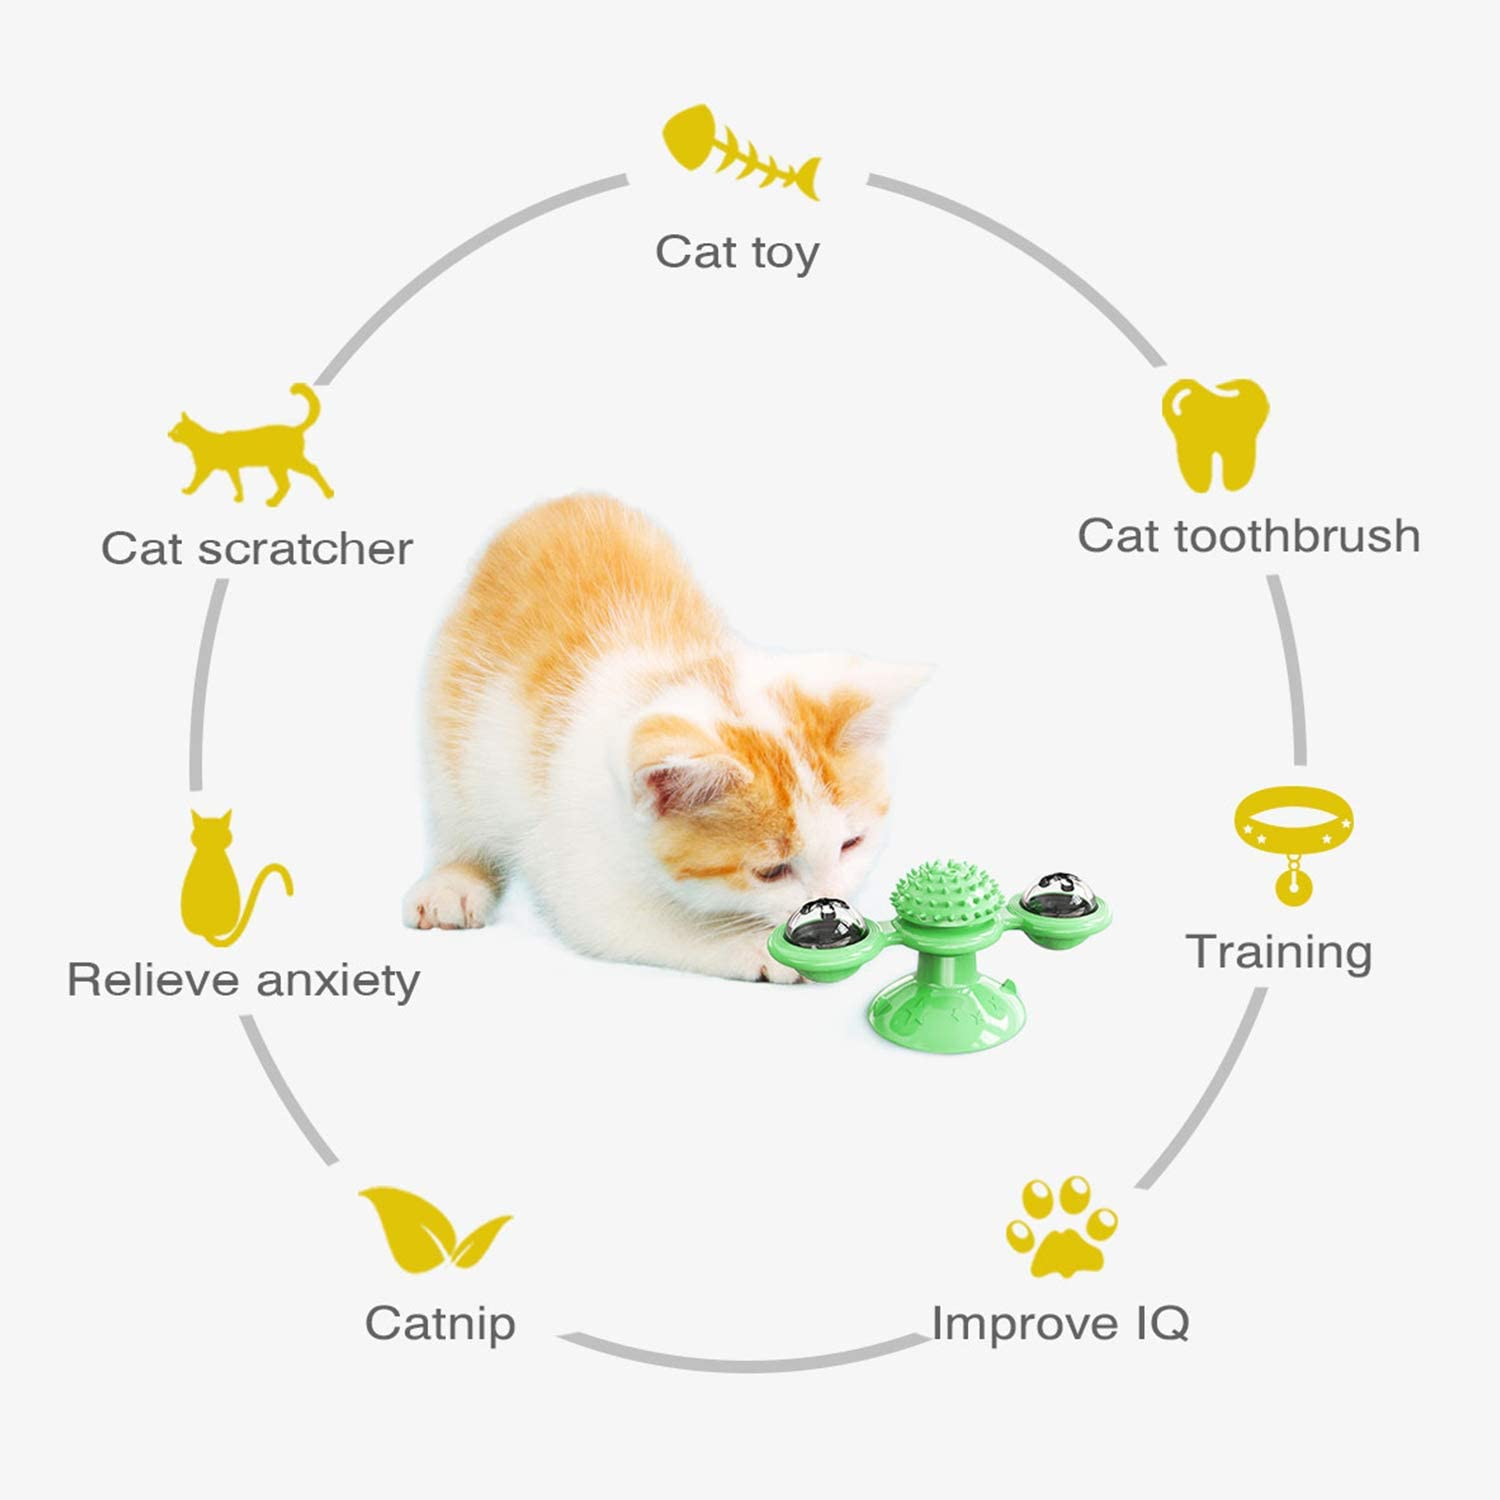 Safe Fun Kitten Toys Cat Teasing Excites Your Feline Zastone Windmill Cat Toy With Suction Cup And Lights Green Interactive Chew Toys Quiet Rotatable Catnip Kitty Toys For Cats Play Toys Mishavig